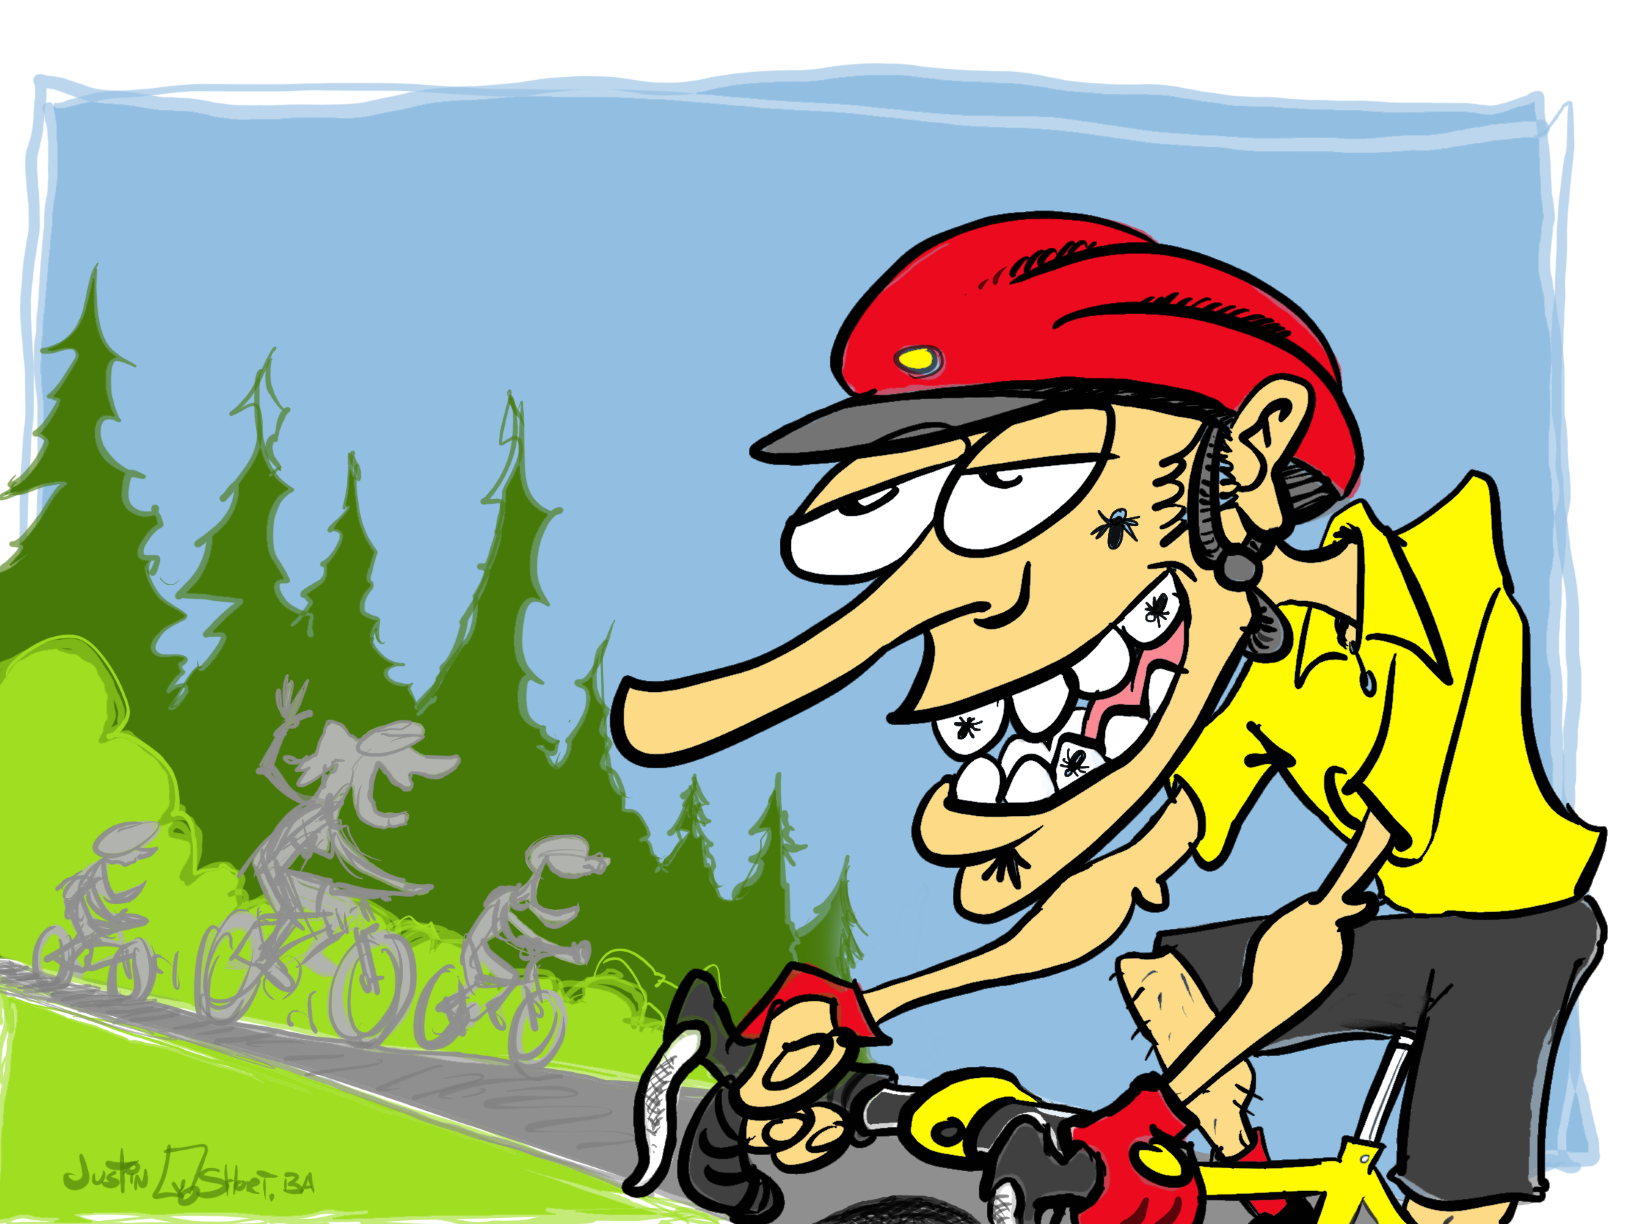 Bugs in teeth bike rider, illustration by Justin Short.